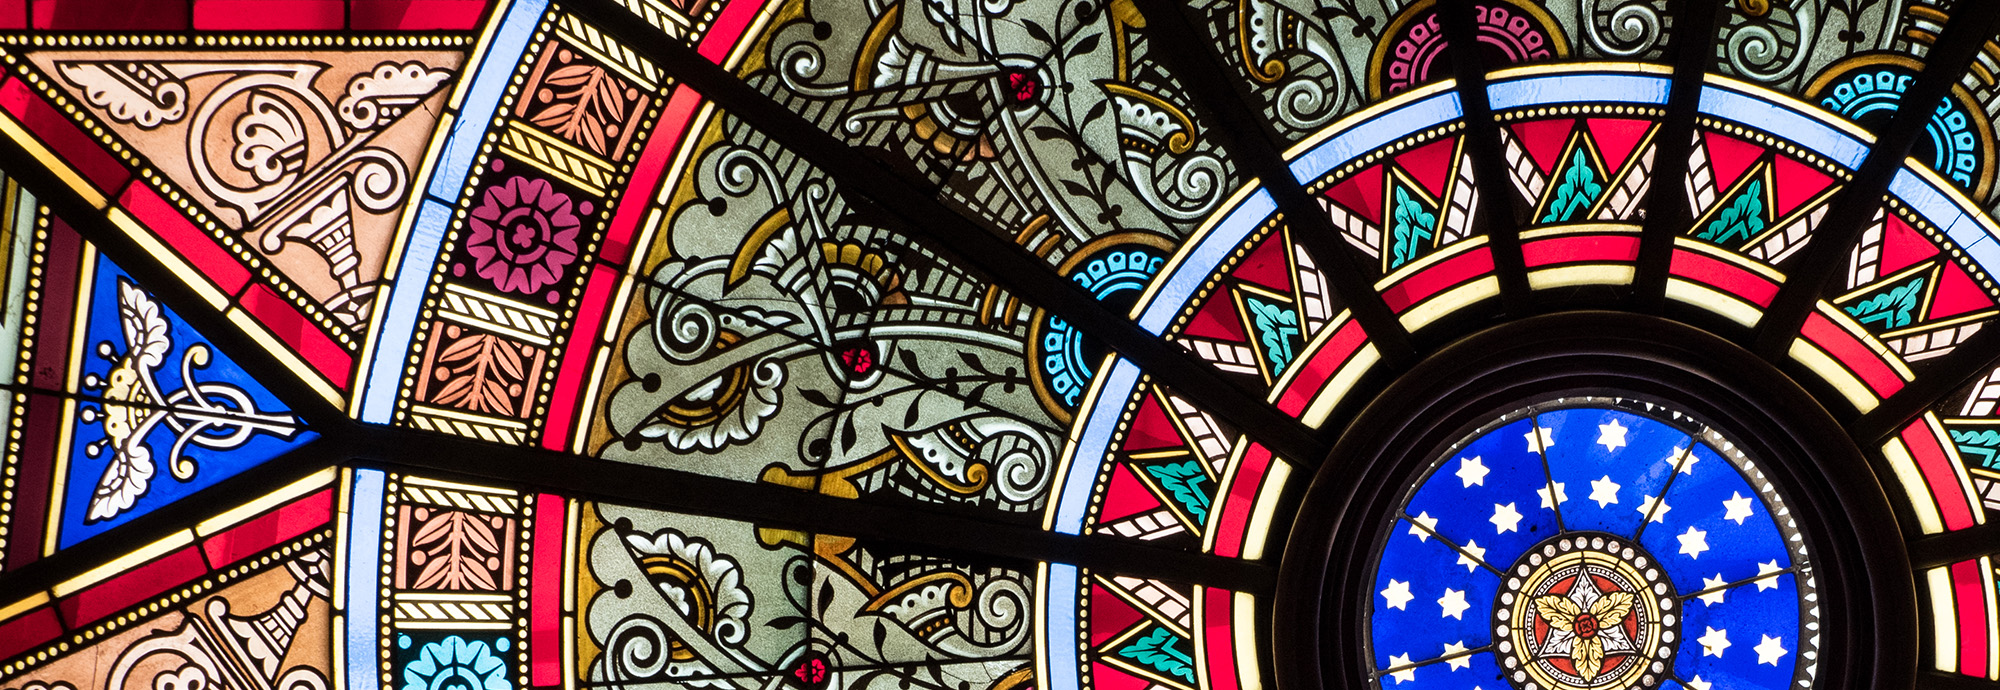 Colorful stain glass window.